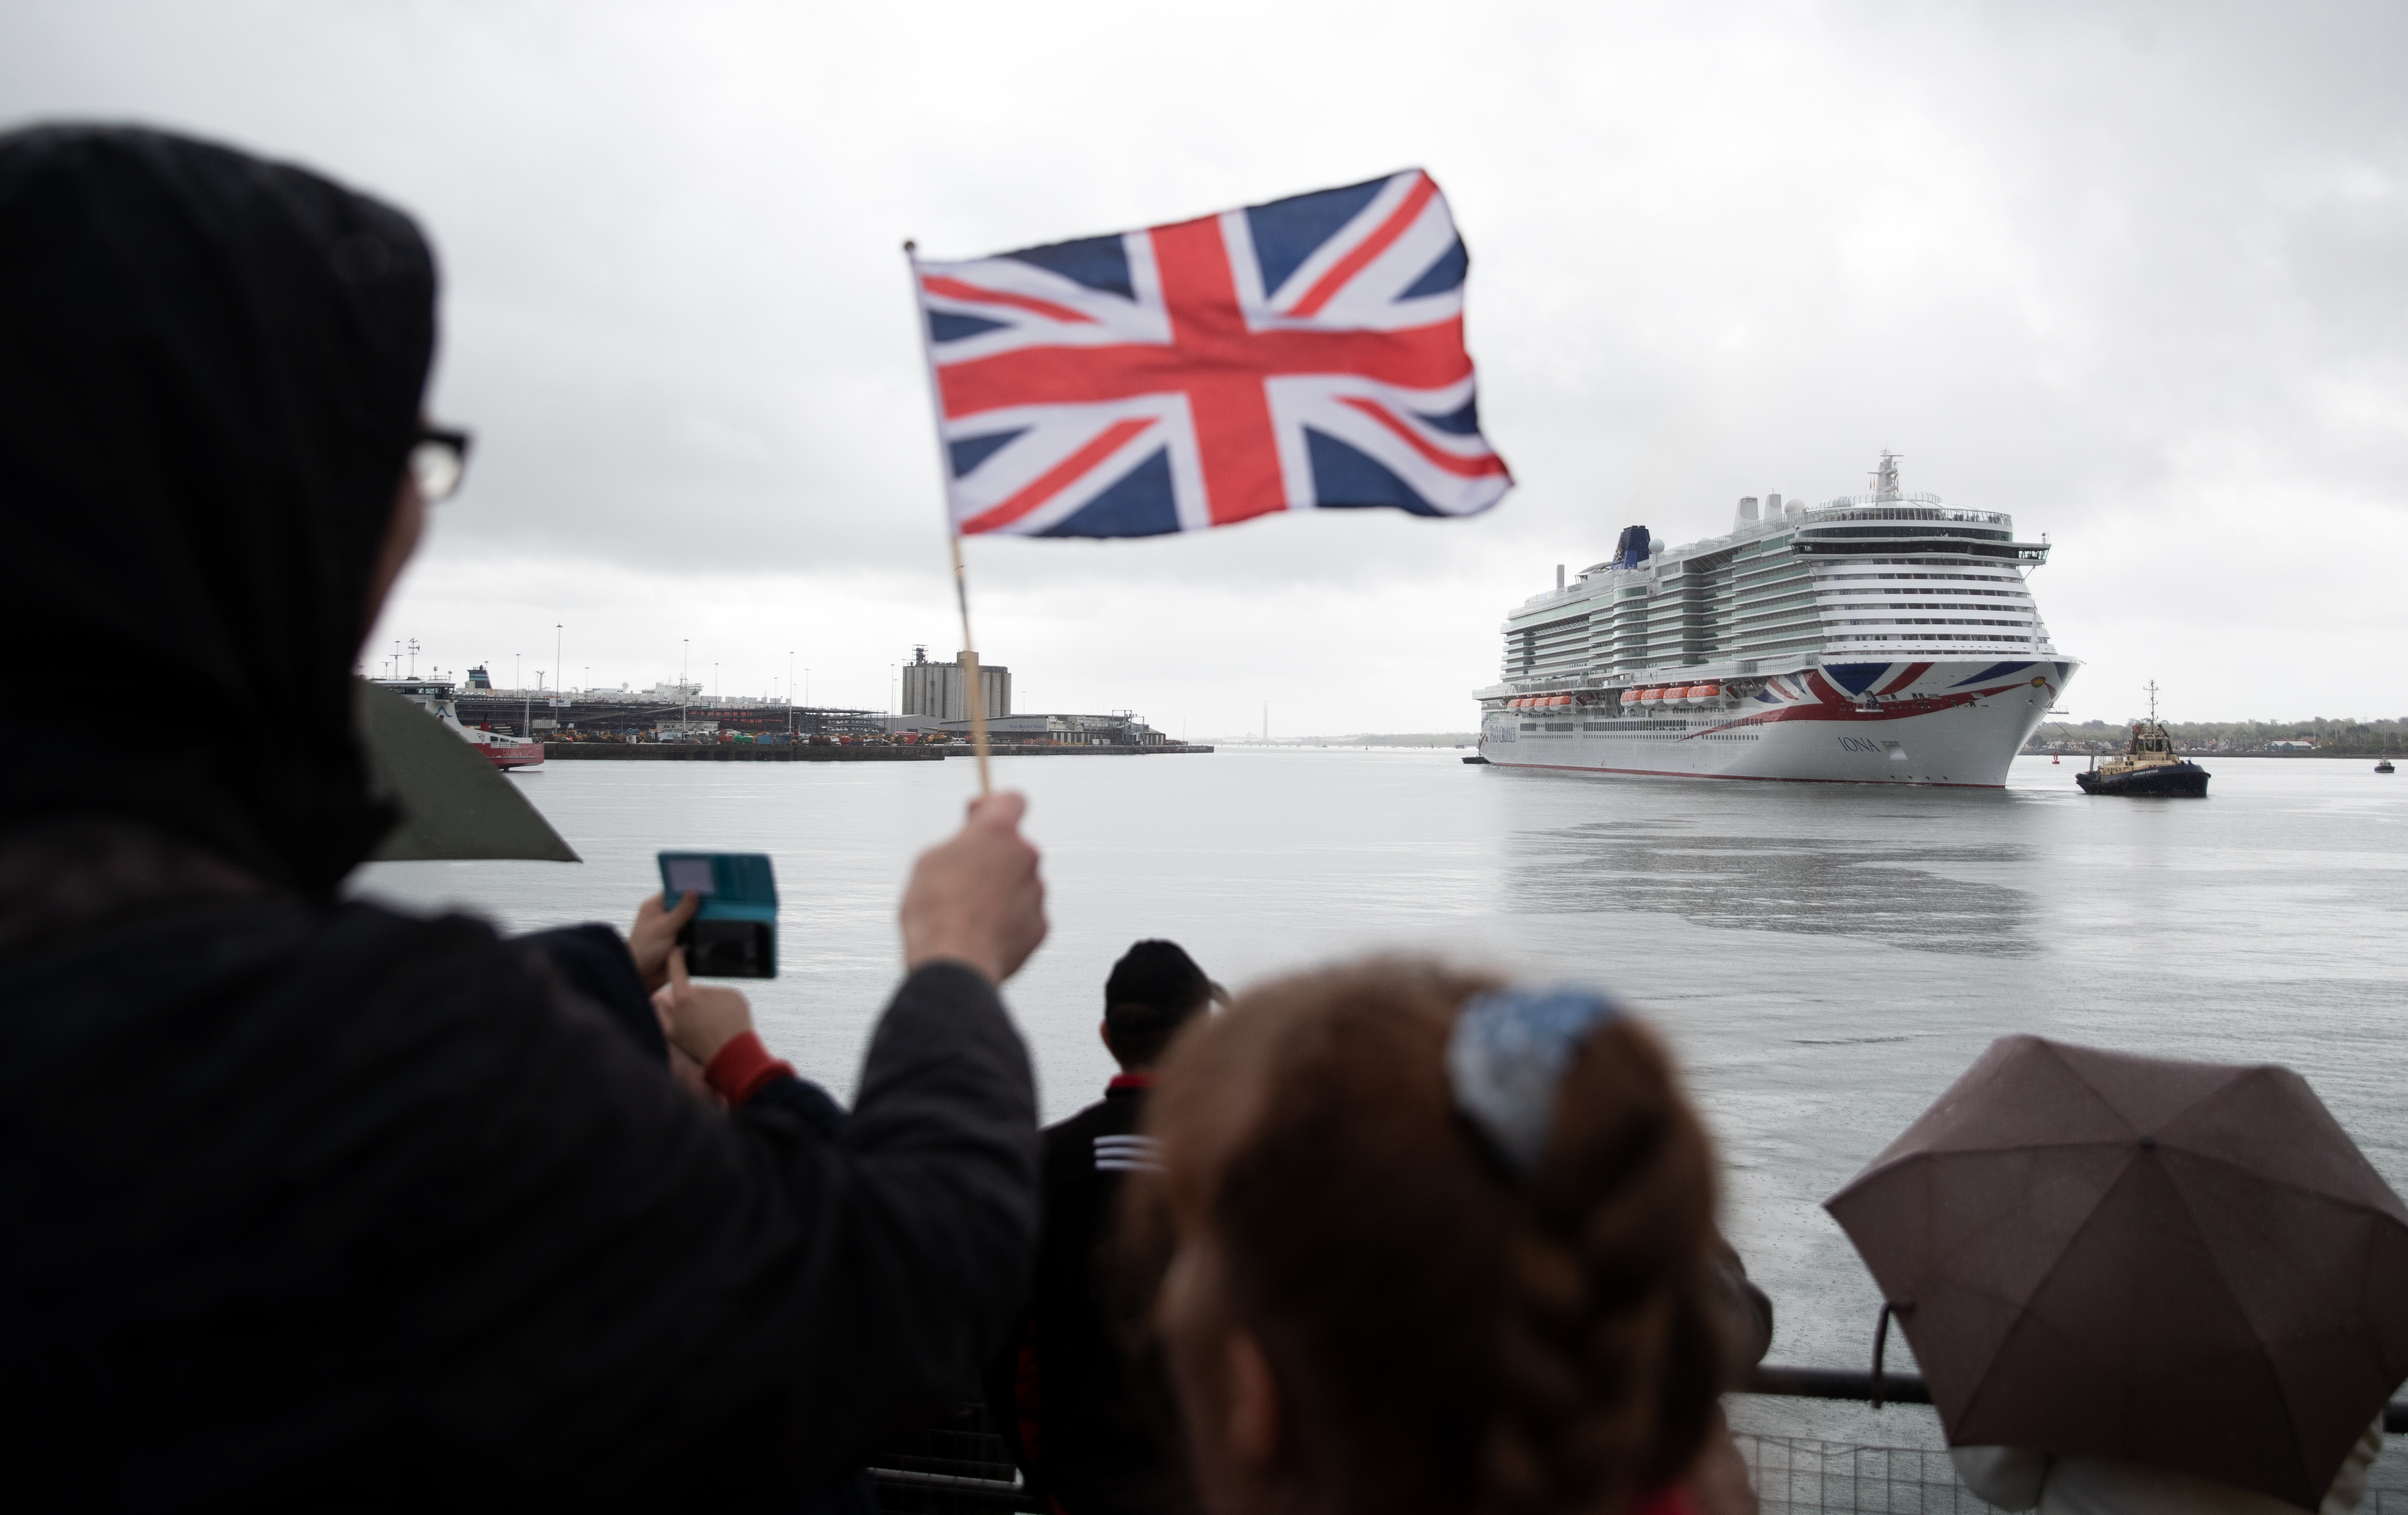 <p>A person waves a Union flag as the new P&amp;O cruise ship Iona enters Southampton for the first time ahead of its naming ceremony. Iona, the largest cruise ship built for the UK market, is 345 metres long (1,132ft), weighs 185,000 tonnes, and has 17 passenger decks, creating capacity for 5,200 holidaymakers. Picture date: Sunday May 16, 2021.</p>